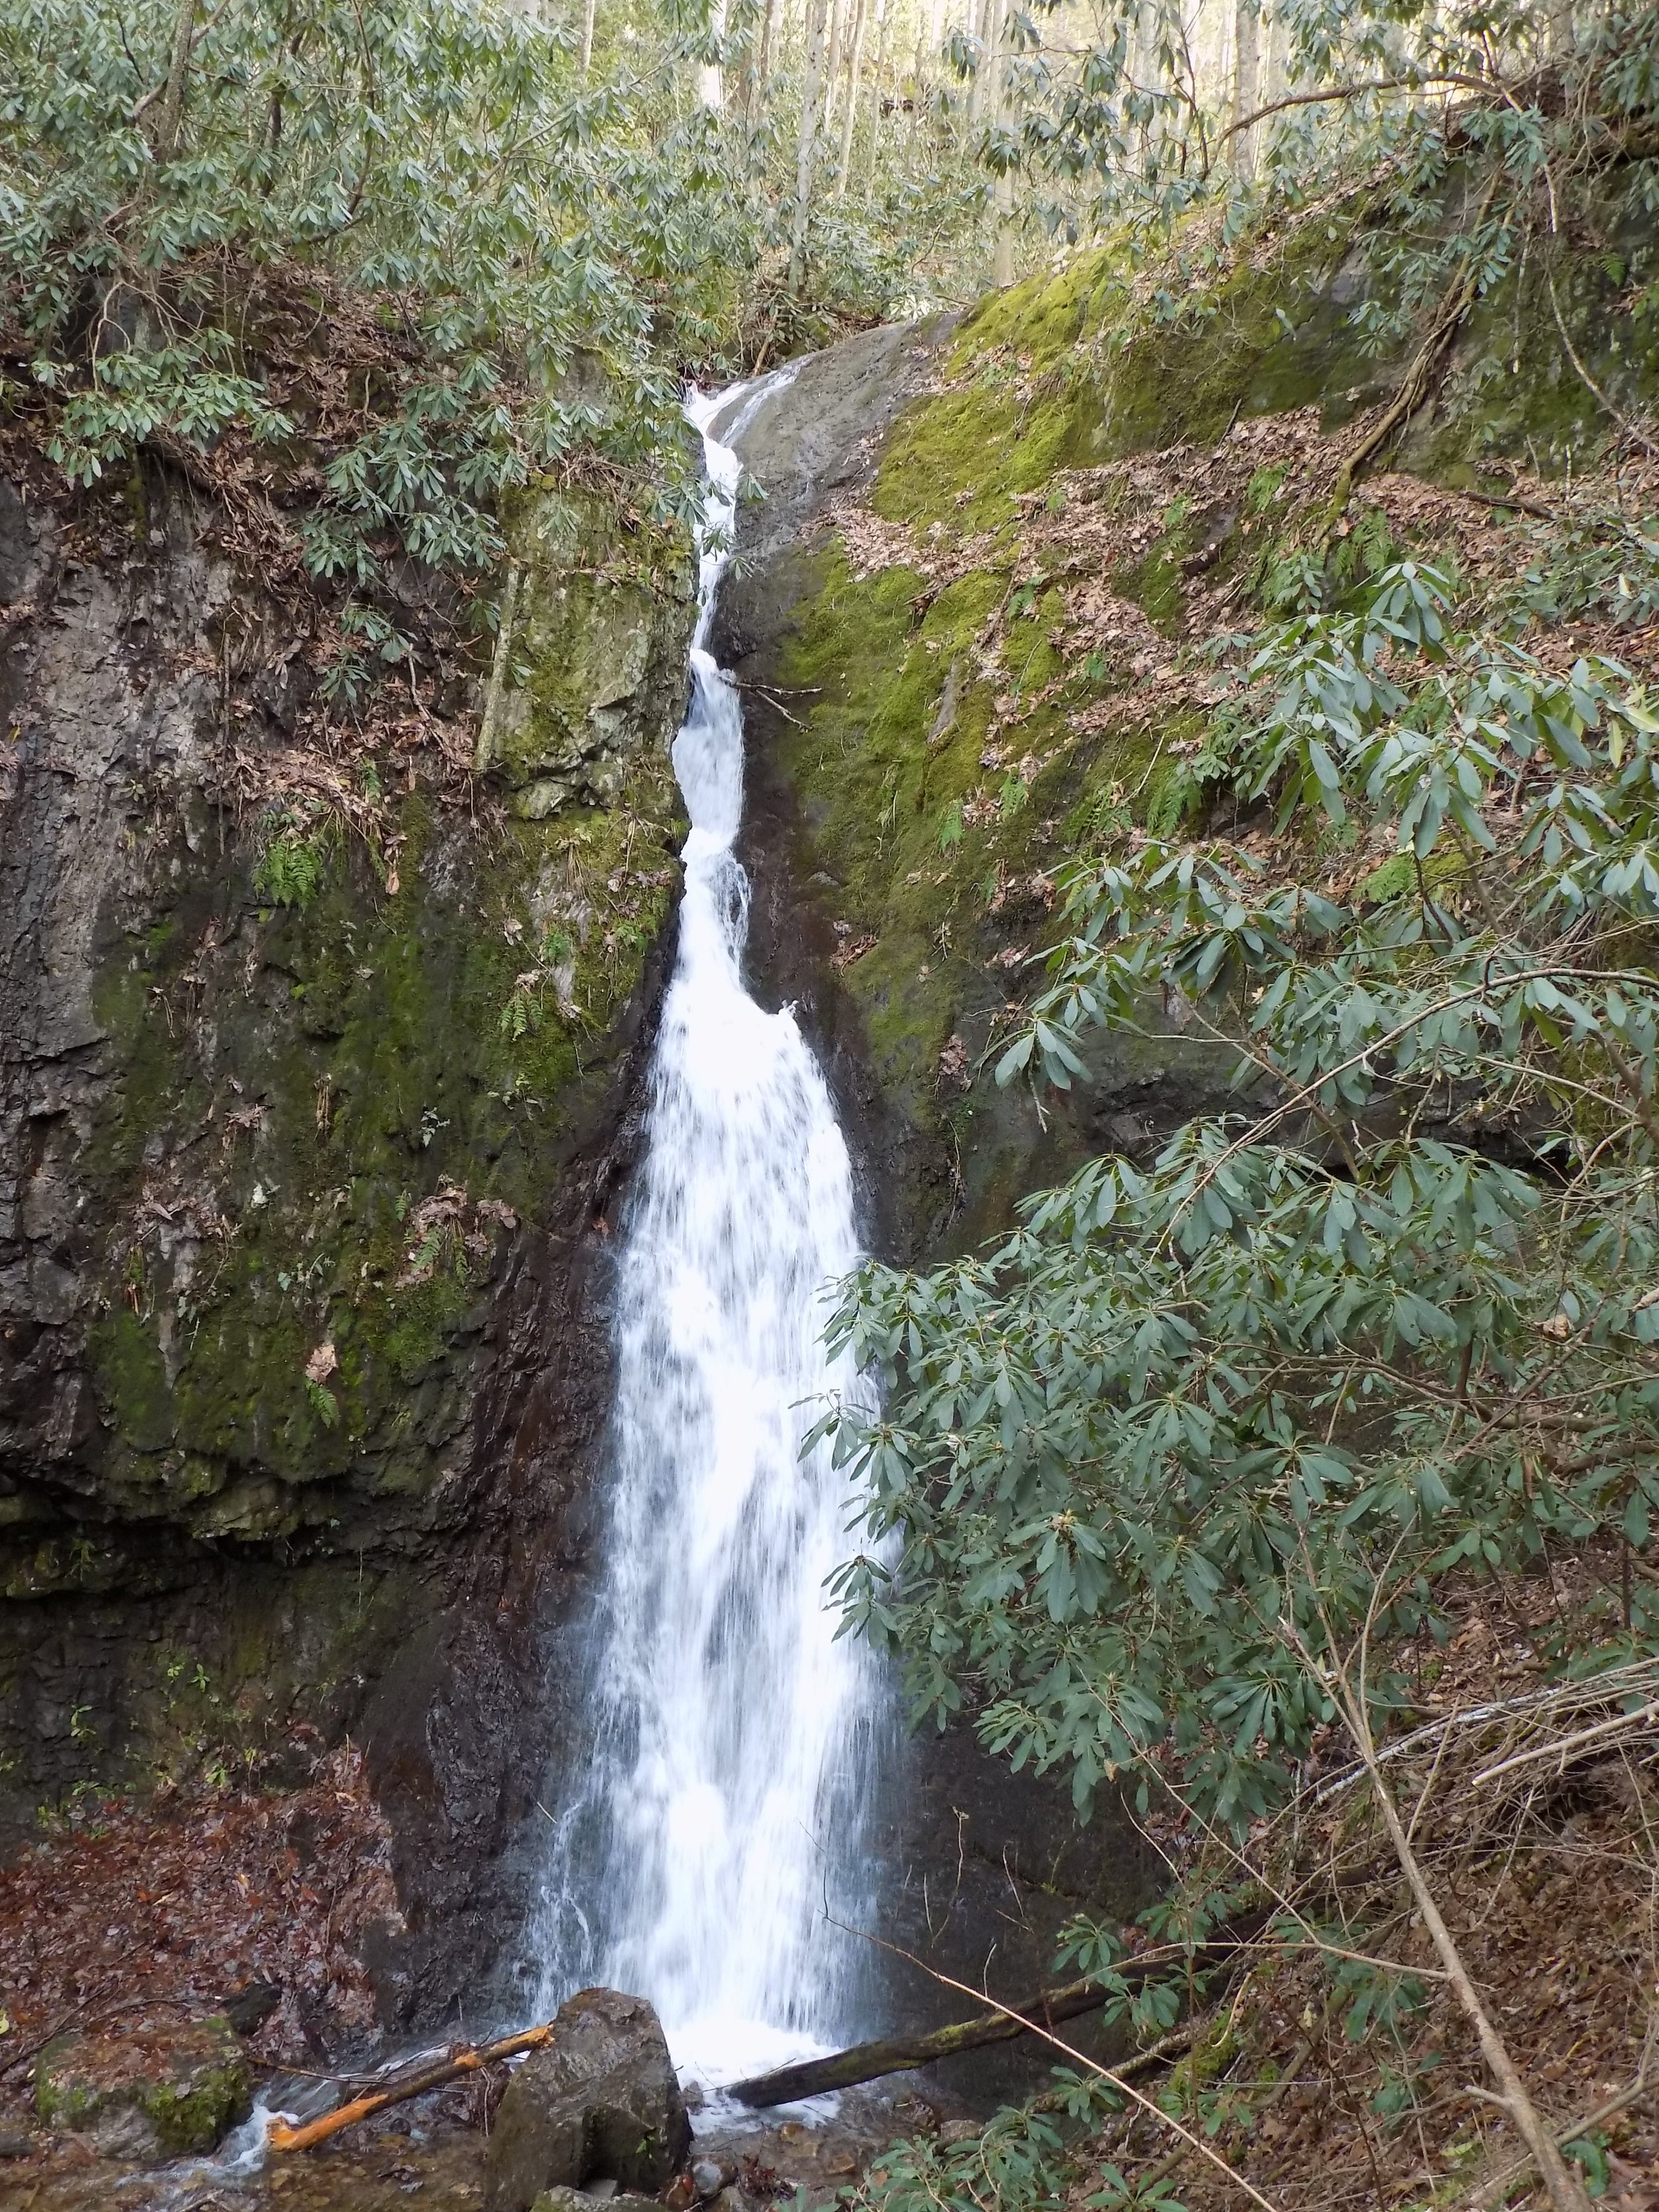 backbone falls - Walk out over the unique rock tunnel, and then enjoy a short hike to view the beautiful backbone falls. Excellent photo opportunities of the rock tunnel, on top of the rock, and the falls. Picnic and swimming opportunities are available as well in the picnic area as Beaverdam creek flows around the rock.